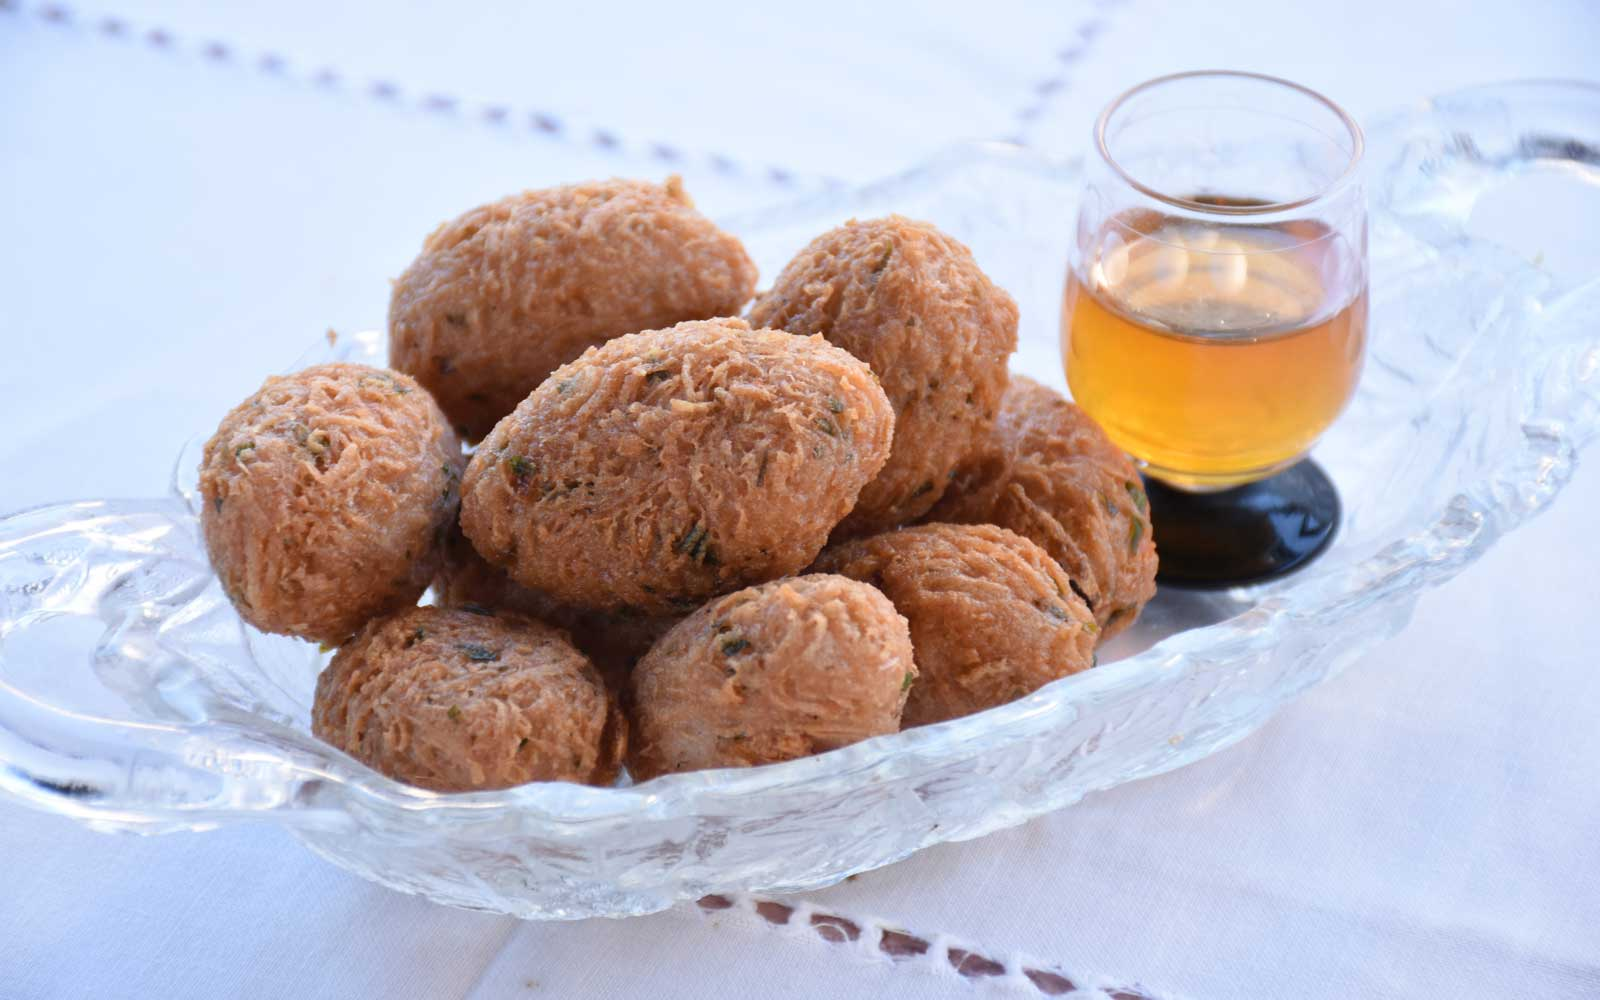 Malanga Fritters at El Atelier from A Taste of Cuba by Cynthia Carris Alonso